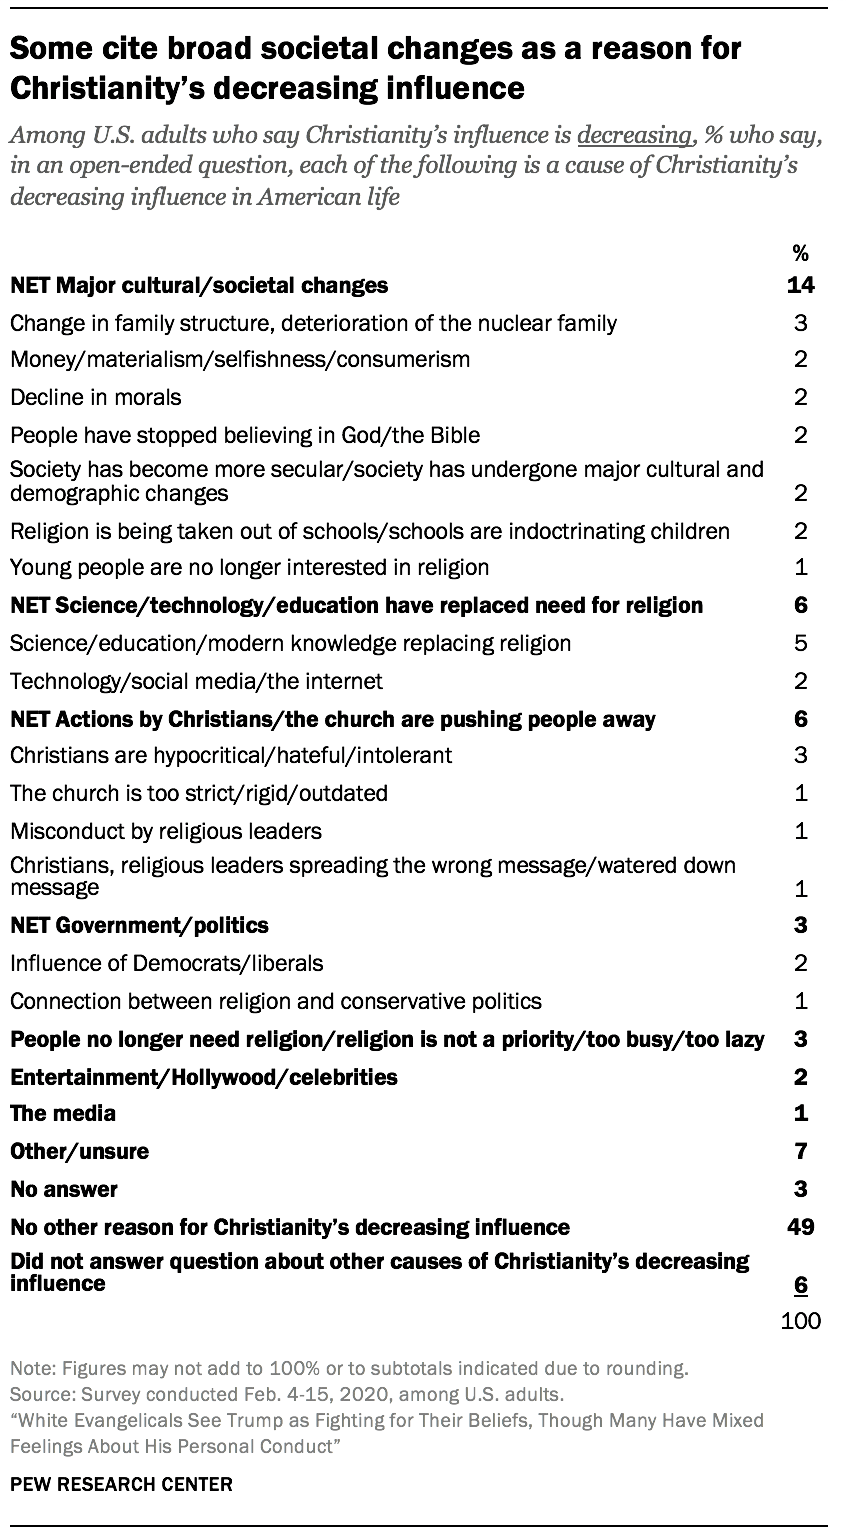 Some cite broad societal changes as a reason for Christianity's decreasing influence